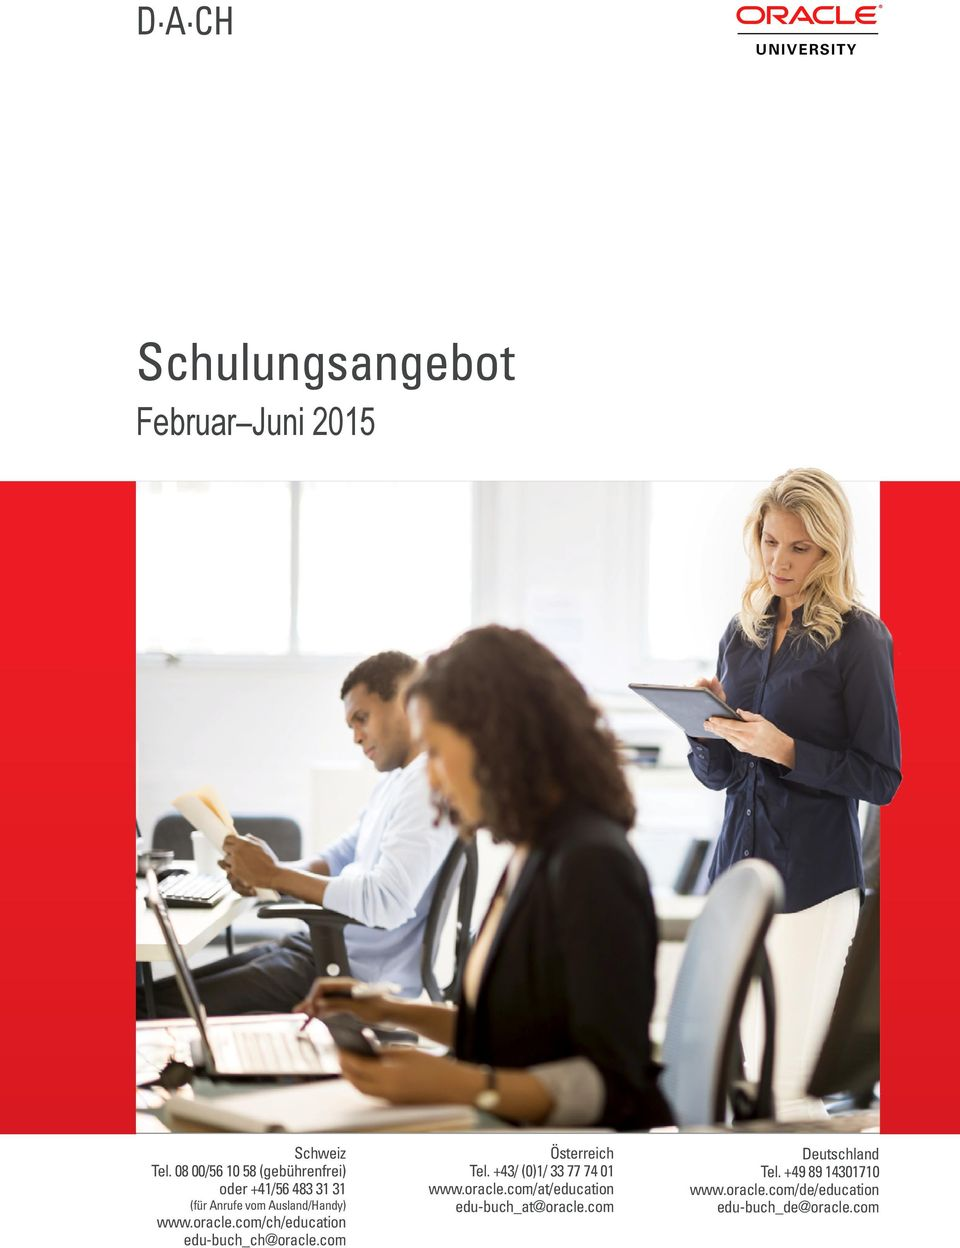 com/ch/education edu-buch_ch@oracle.com Österreich Tel. +43/ (0)1/ 33 77 74 01 www.oracle.com/at/education edu-buch_at@oracle.